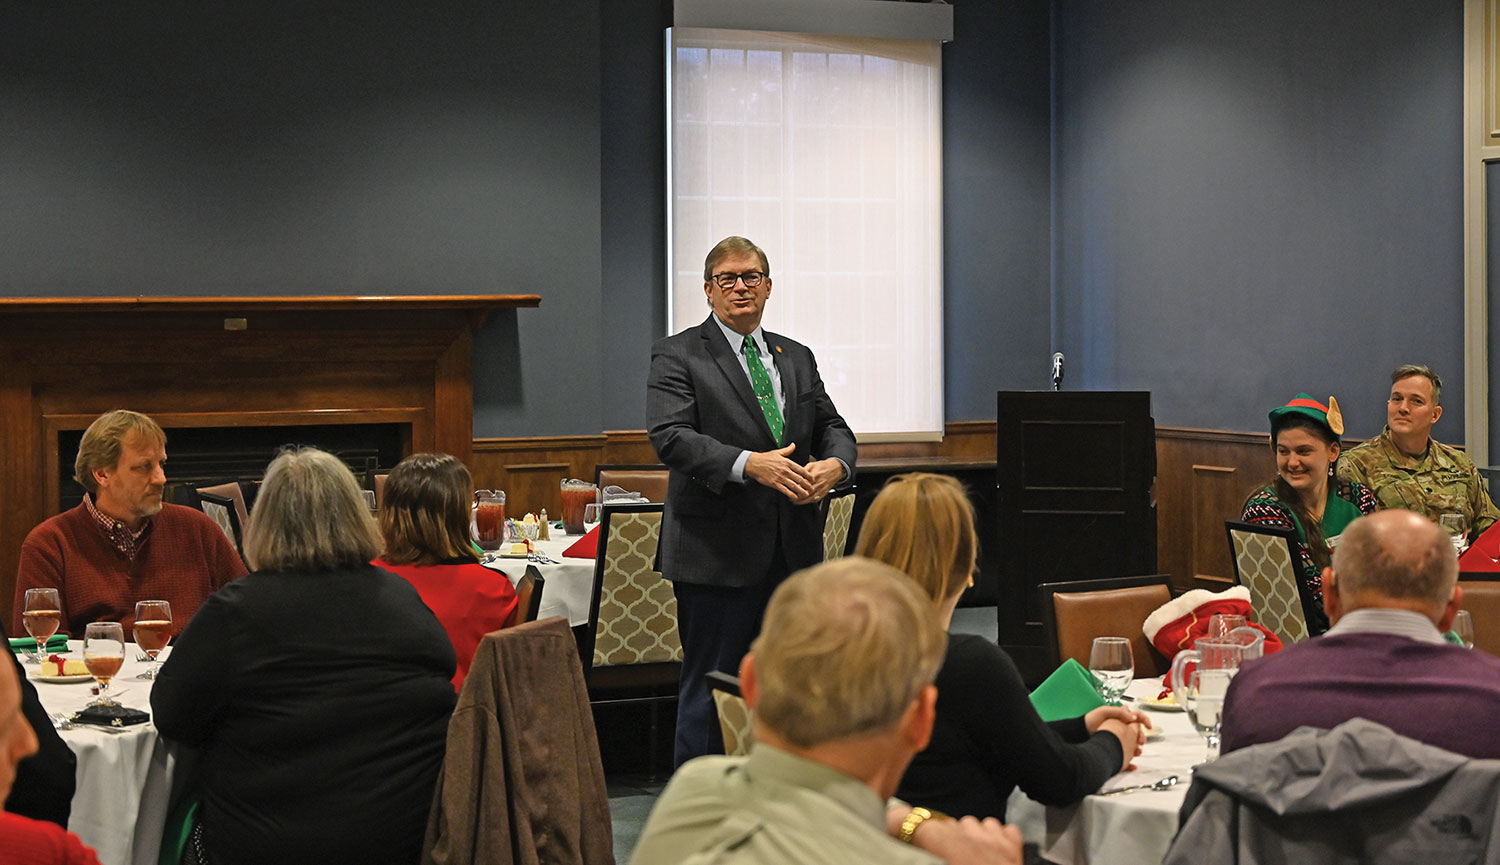 Foundation Chair Mike Hockley recognizes staff and trustees at the annual holiday appreciation luncheon Dec. 12, 2019, at the Frontier Conference Center on Fort Leavenworth.